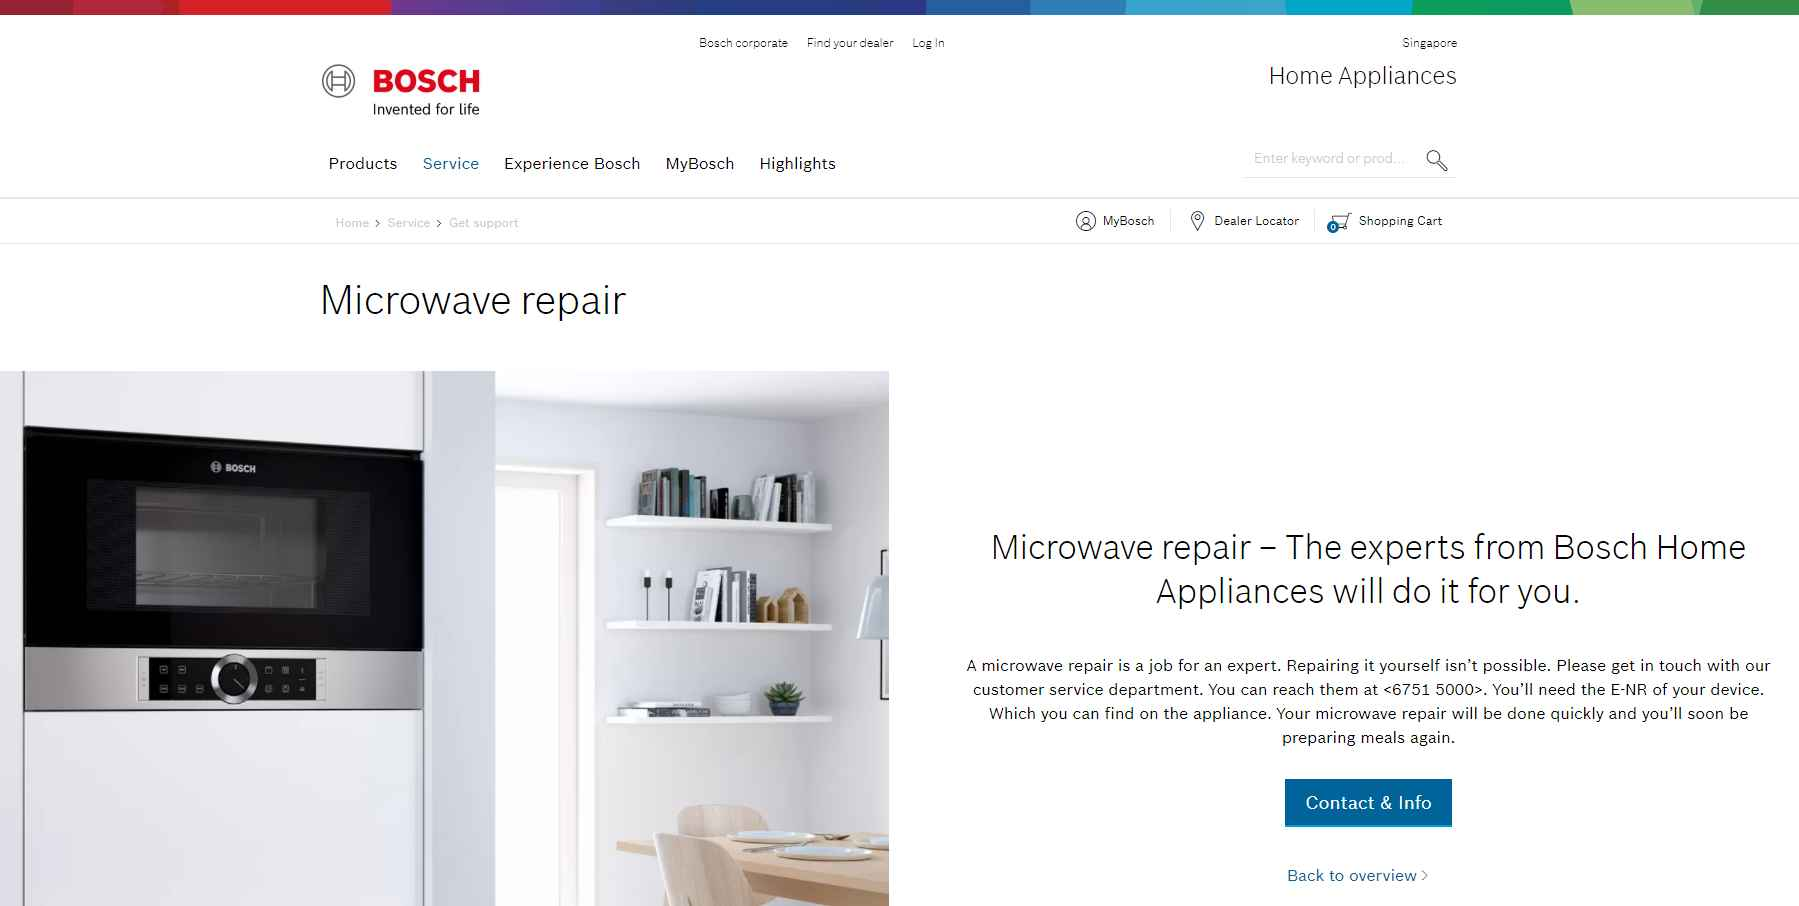 bosch Top Microwave Repair Services in Singapore